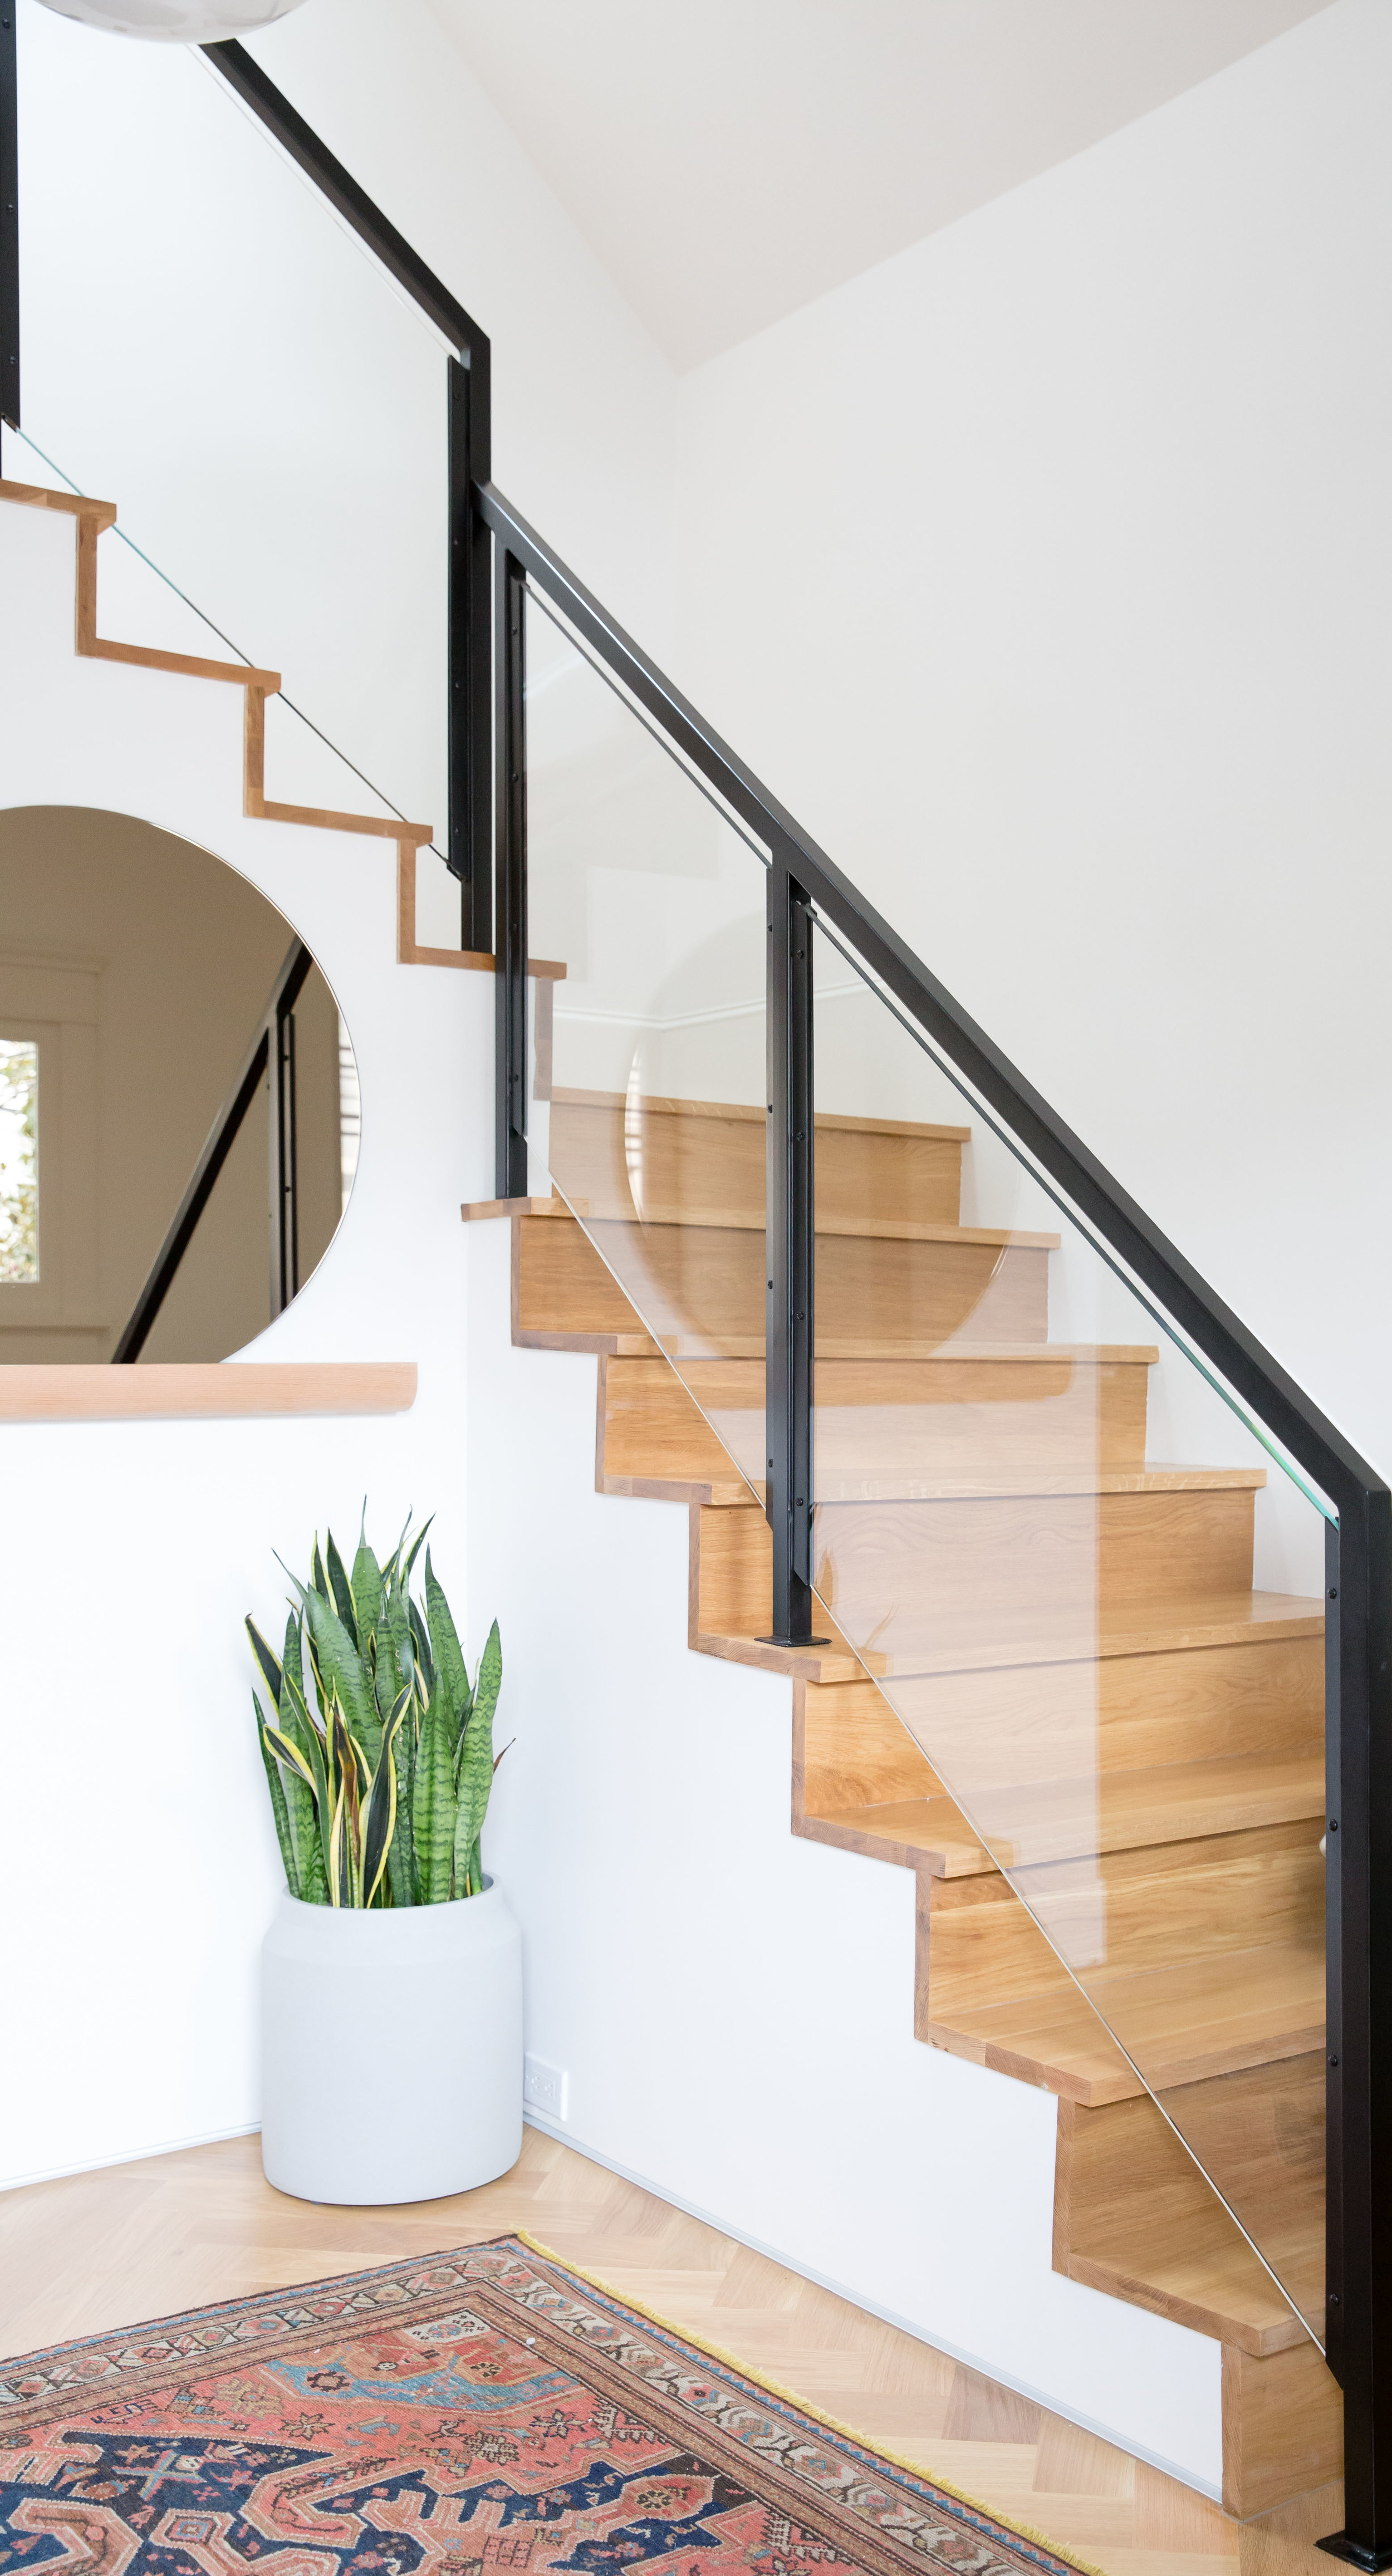 17 RBD Noe Valley Parisian Atelier - Entry Way Staircase Cropped.jpg